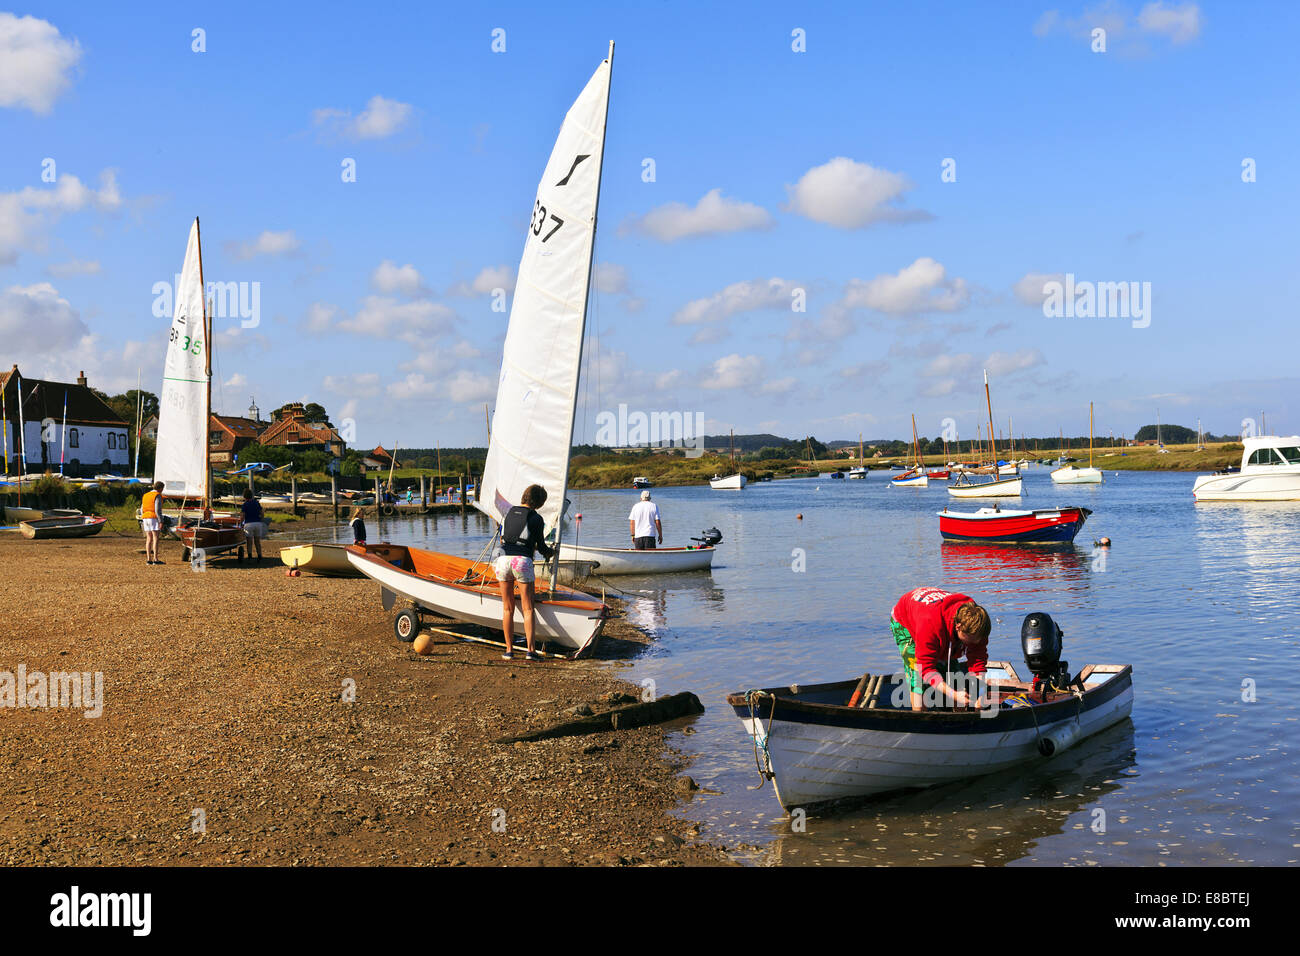 Preparing to Sail on the creek at Burnham Overy Staithe - Stock Image